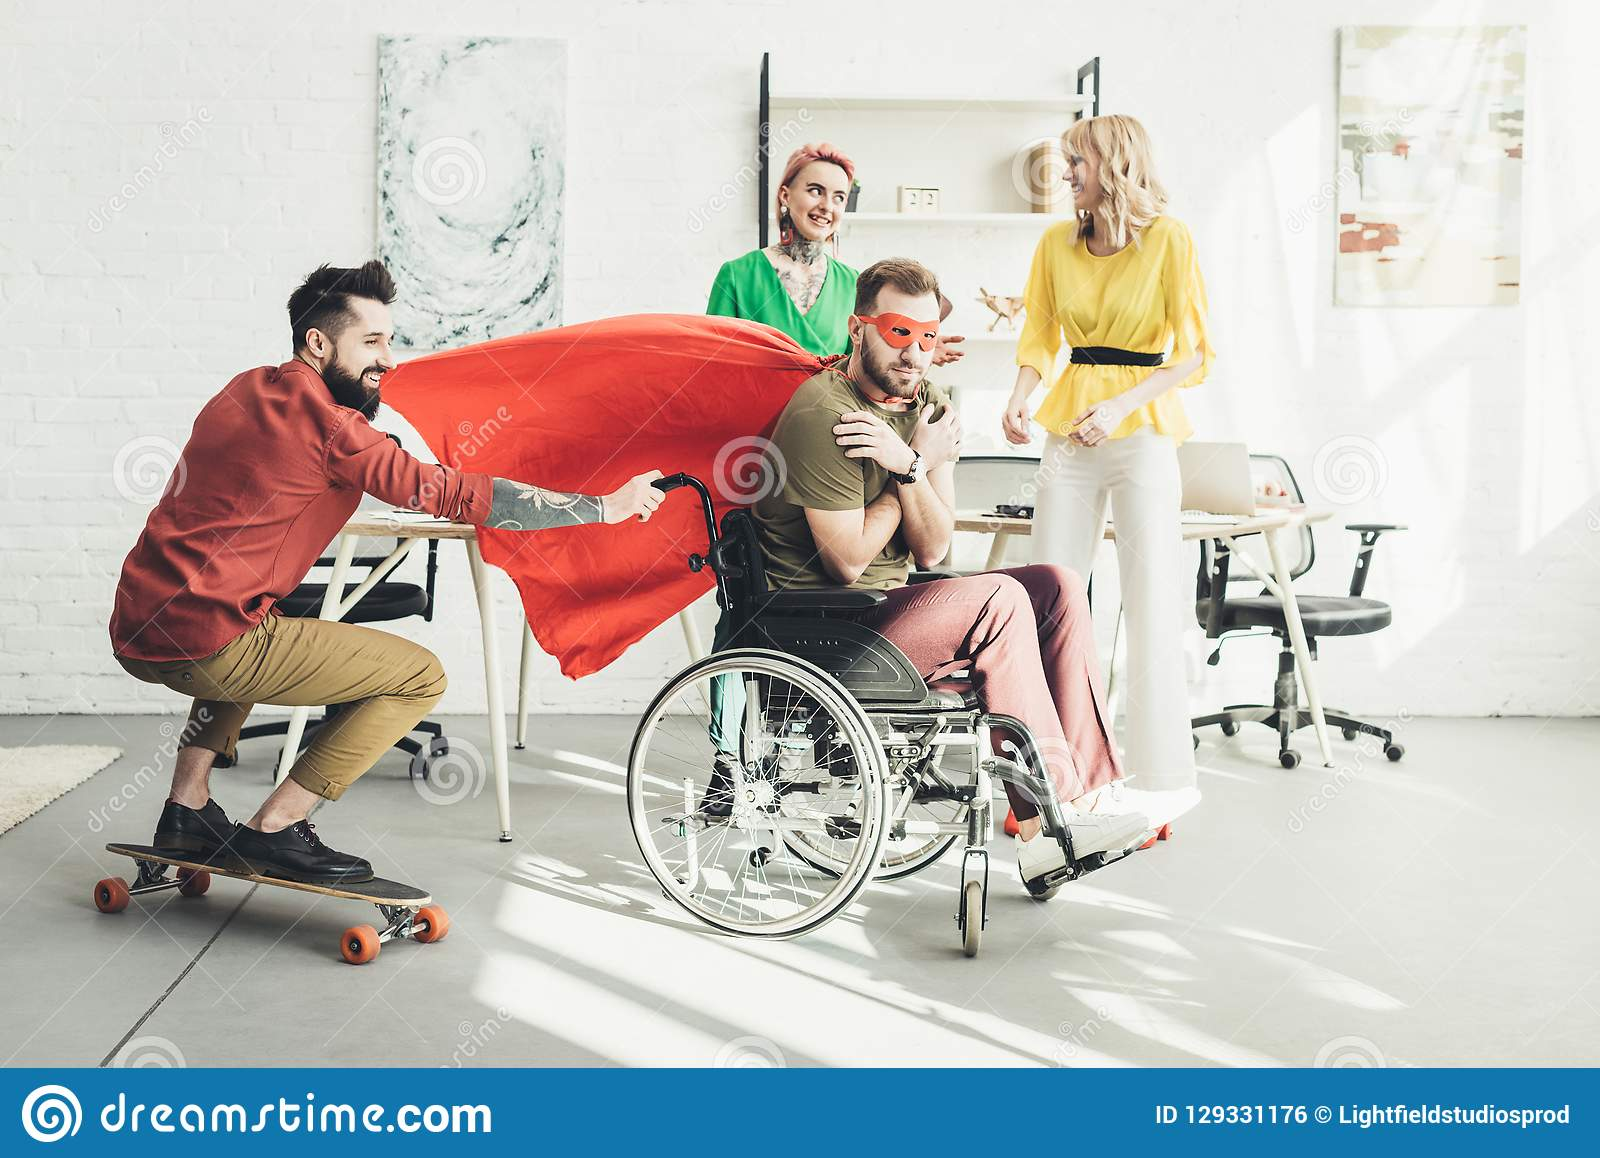 Disabled businessman in superhero costume with colleague on skateboard and businesswomen behind in office royalty free stock image